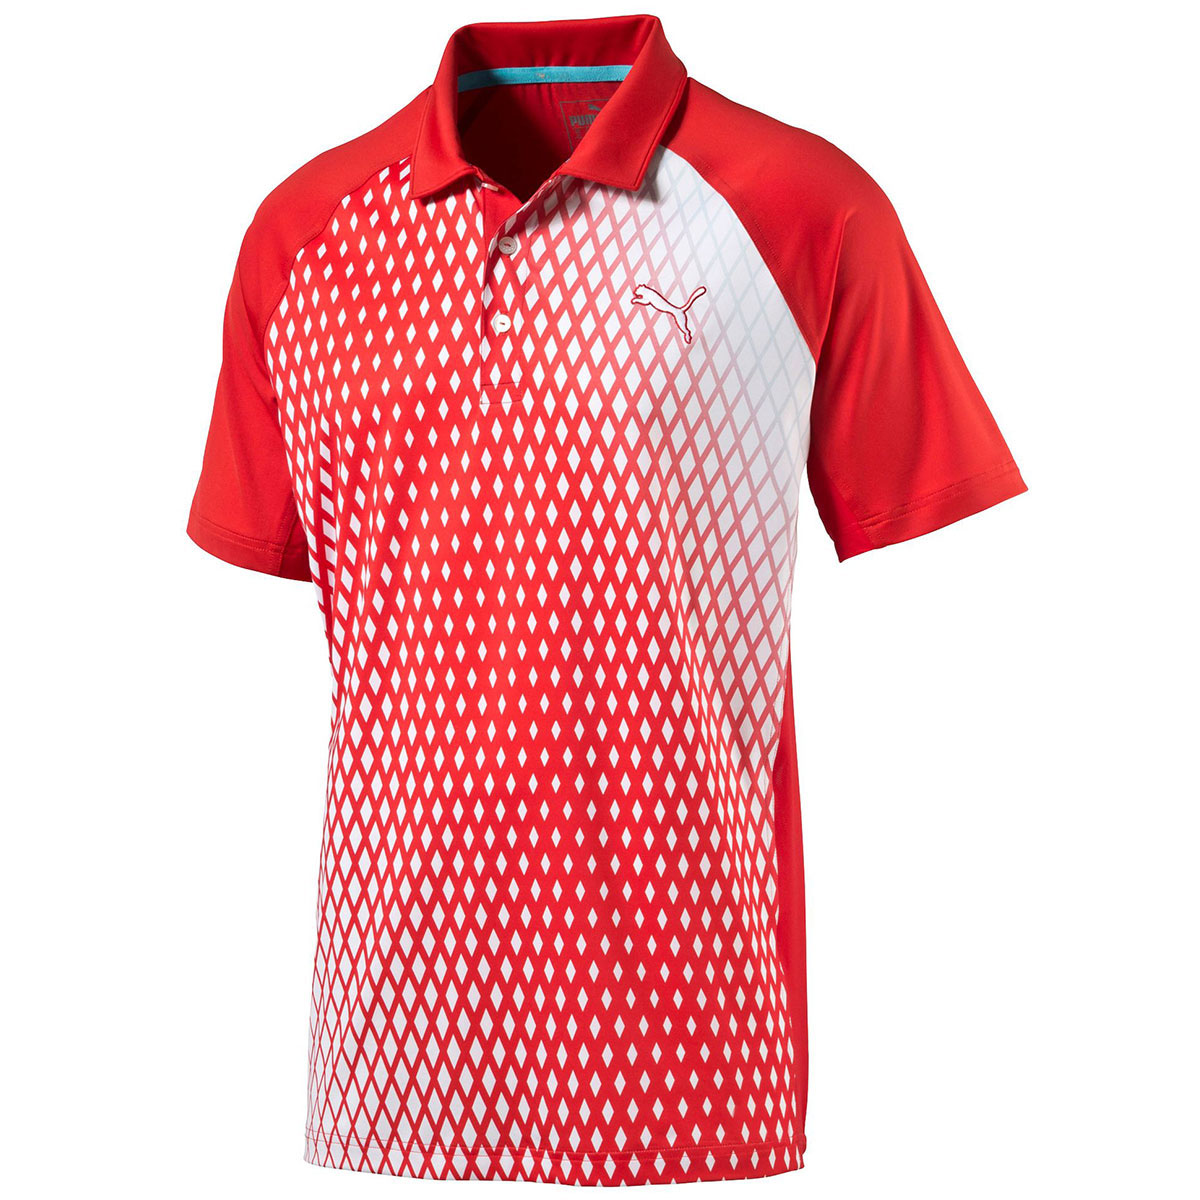 Puma golf 2016 mens players performance tech polo shirt for Mens puma golf shirts